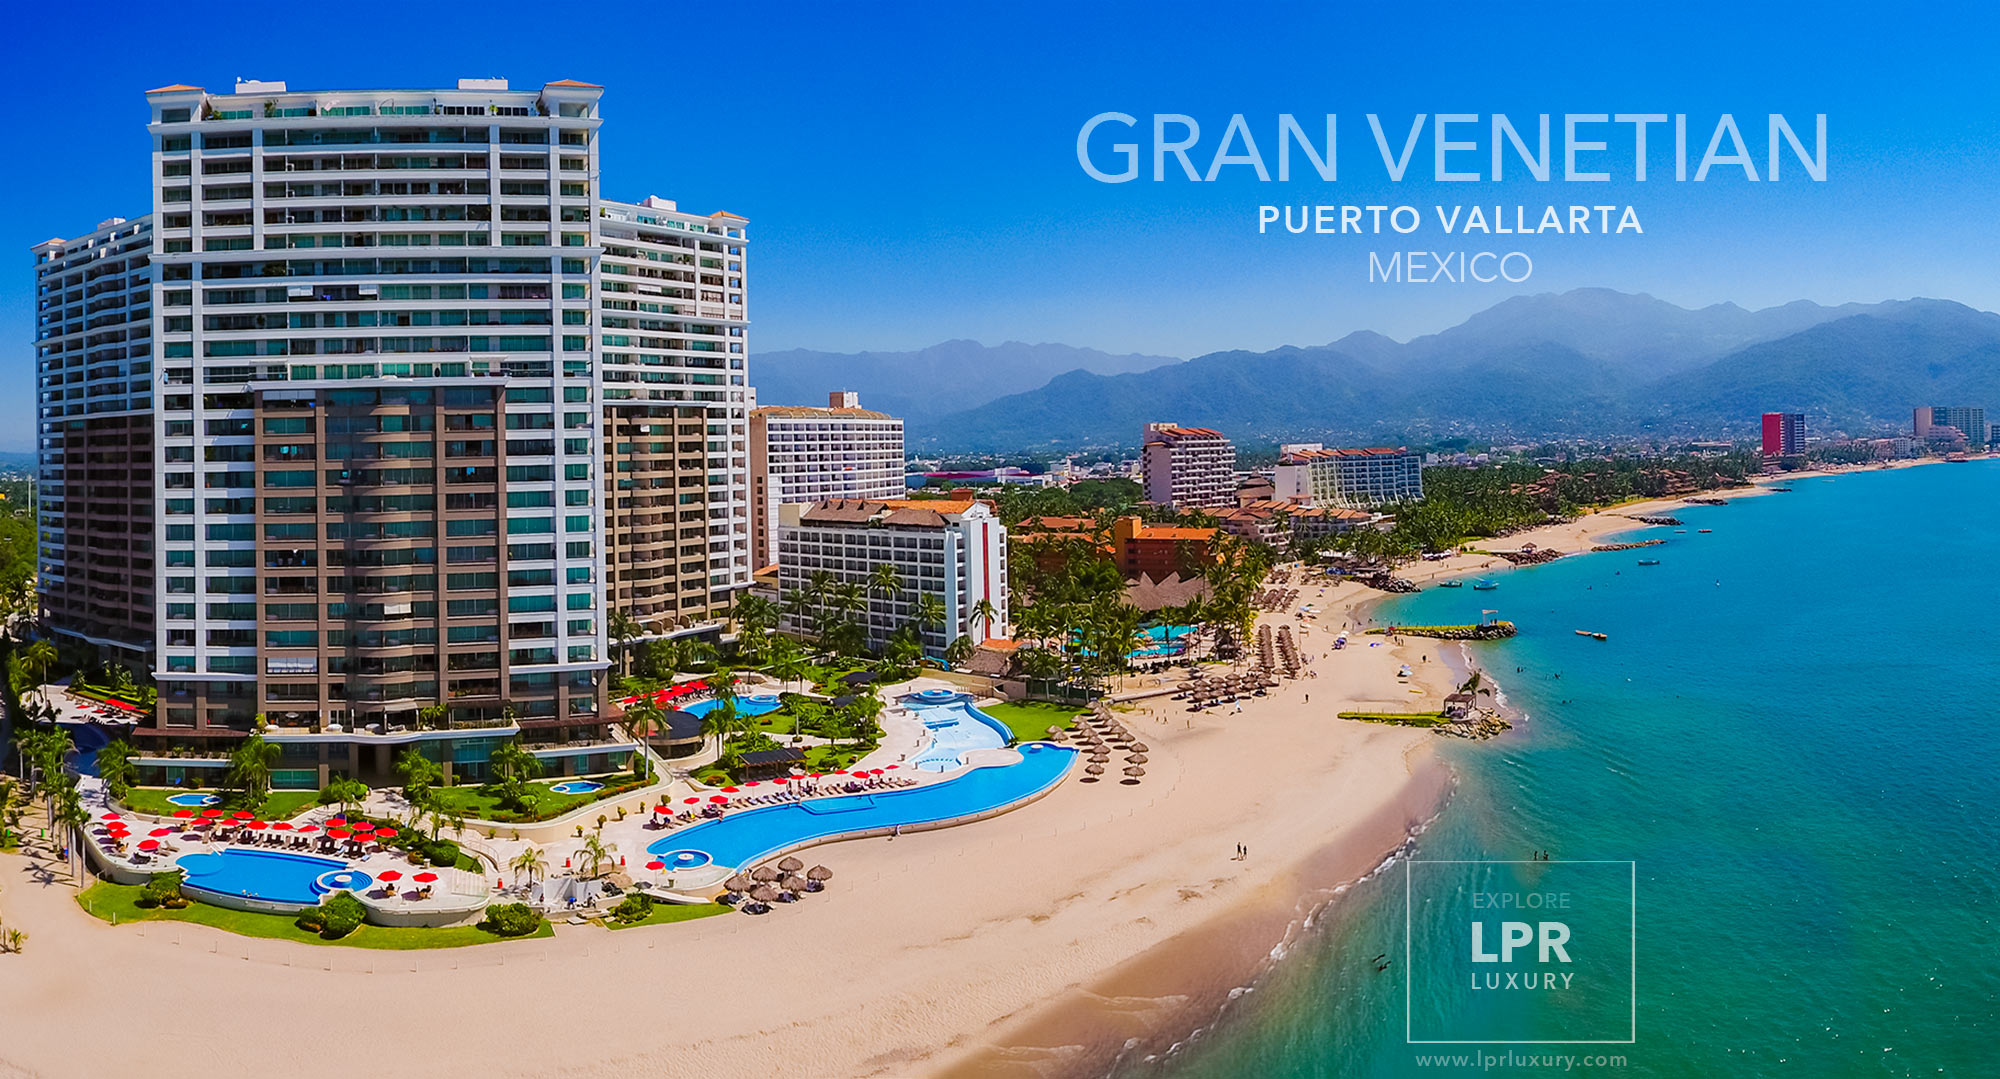 Grand Venetian - Puerto Vallarta vacation rental condos and real estate condominiums - Mexico